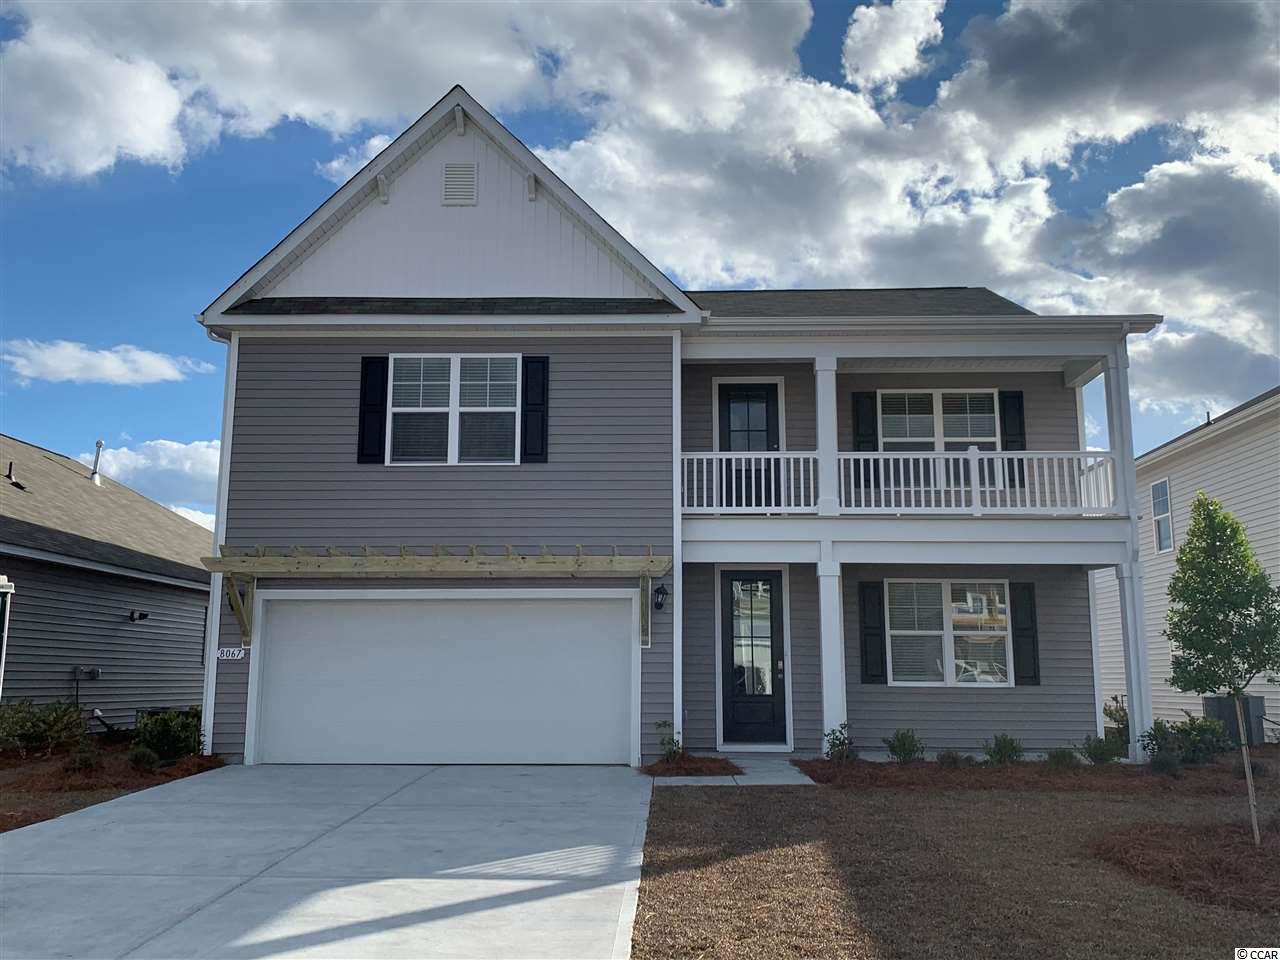 "This popular Tillman plan will give you the perfect mix of indoor and outdoor living featuring a large front porch with a second floor balcony above it and a rear patio overlooking the pond! Gourmet kitchen with sleek granite, 36"" staggered cabinets, and stainless Whirlpool appliances including a gas range. Beautiful wide plank laminate flooring flows throughout the dining room, kitchen, and living room. The first floor primary bedroom boasts a huge walk-in closet and en suite bath with a double vanity, 5' shower, and linen closet. Upstairs you will find a generous loft area, four additional bedrooms, and two full bathrooms. One bedroom is a self contained suite with direct access to a bathroom. It gets better- this is America's Smart Home! Each of our homes comes with an industry leading smart home technology package that will allow you to control the thermostat, front door light and lock, and video doorbell from your smartphone or with voice commands to Alexa. *Photos are of a similar Tillman home. (Home and community information, including pricing, included features, terms, availability and amenities, are subject to change prior to sale at any time without notice or obligation.  Square footages are approximate.  Pictures, photographs, colors, features, and sizes are for illustration purposes only and will vary from the homes as built.  Equal housing opportunity builder.)"